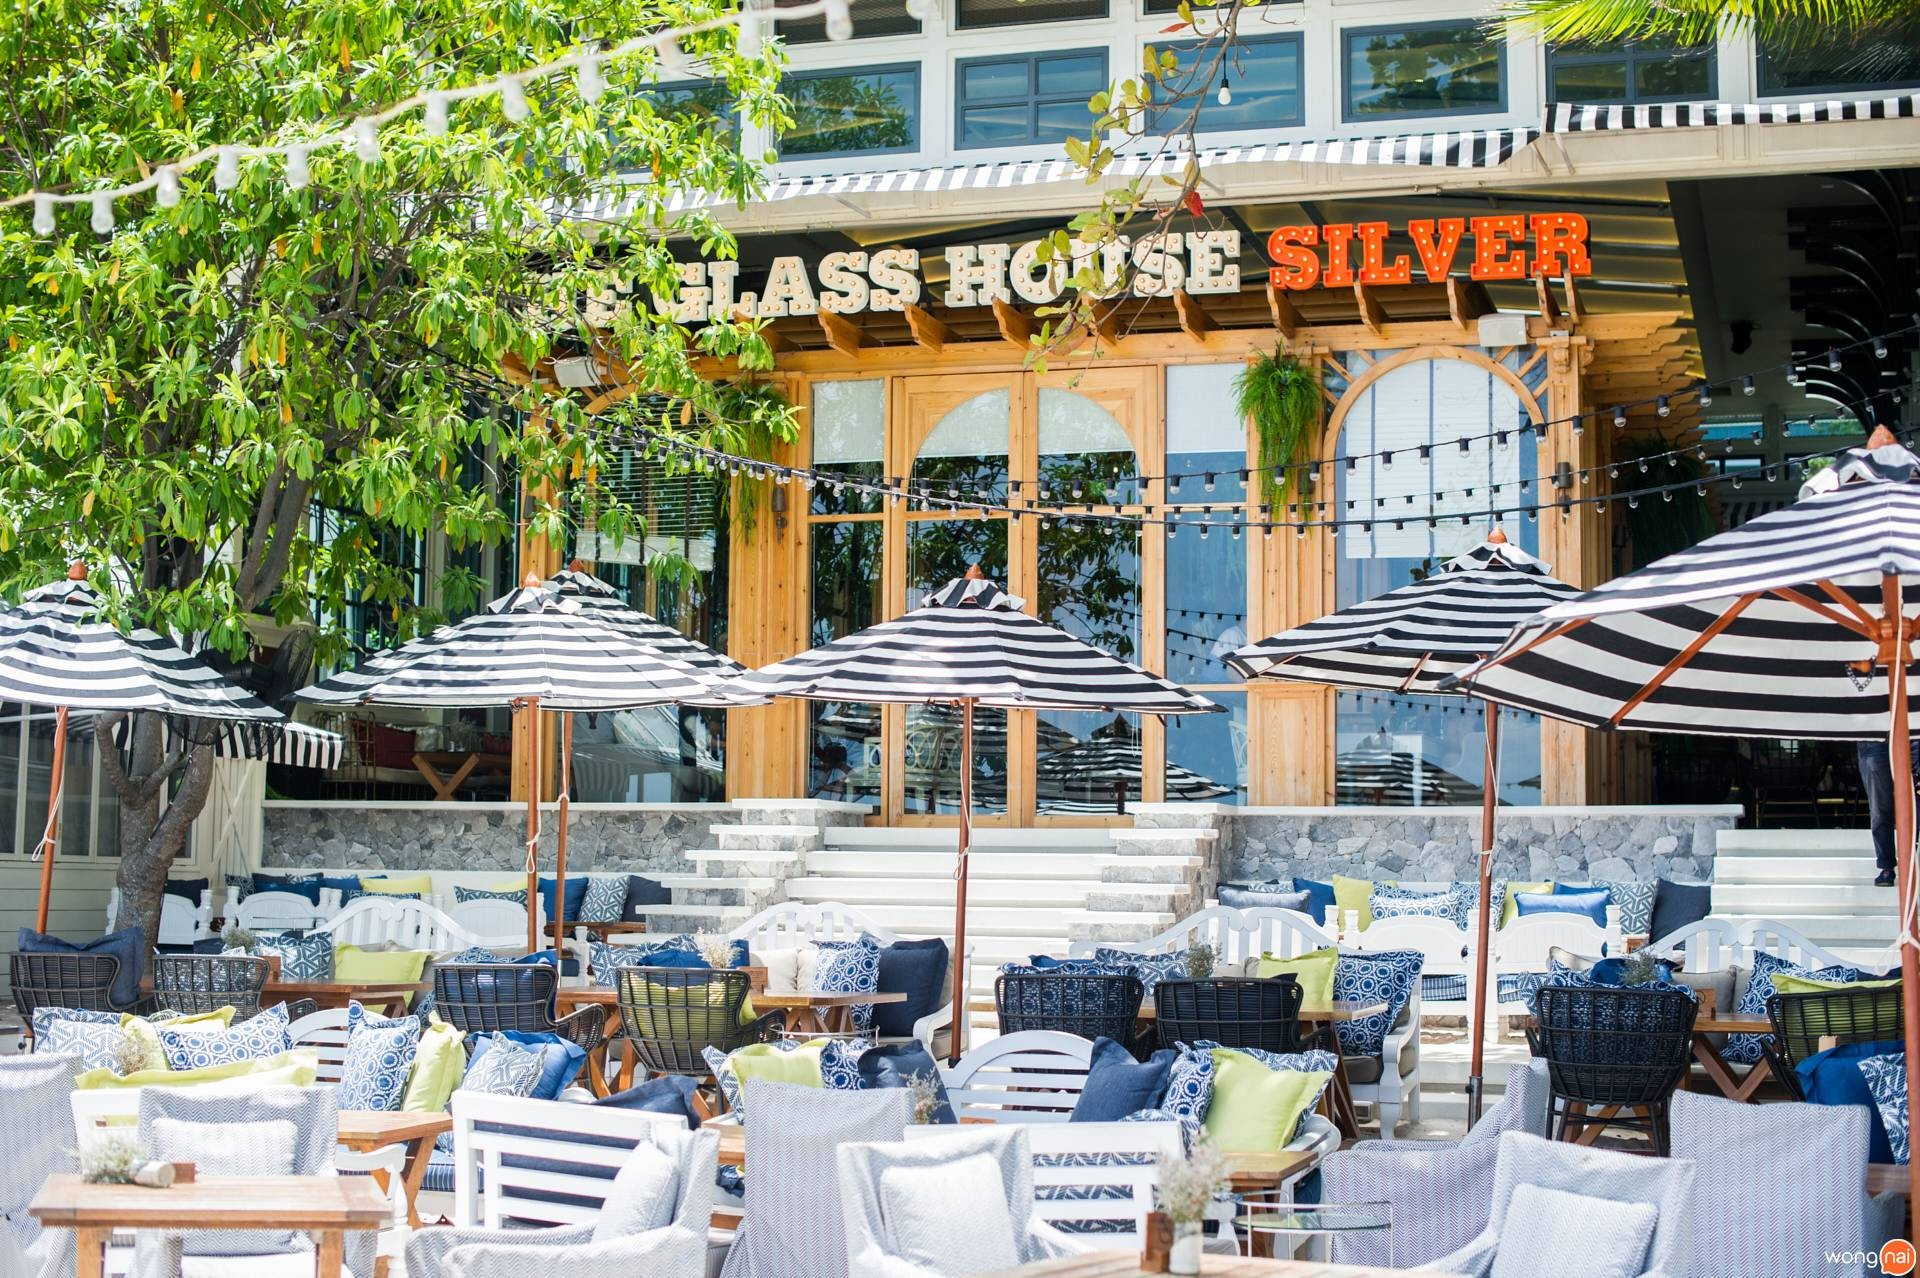 The Glass House Silver นาเกลือ